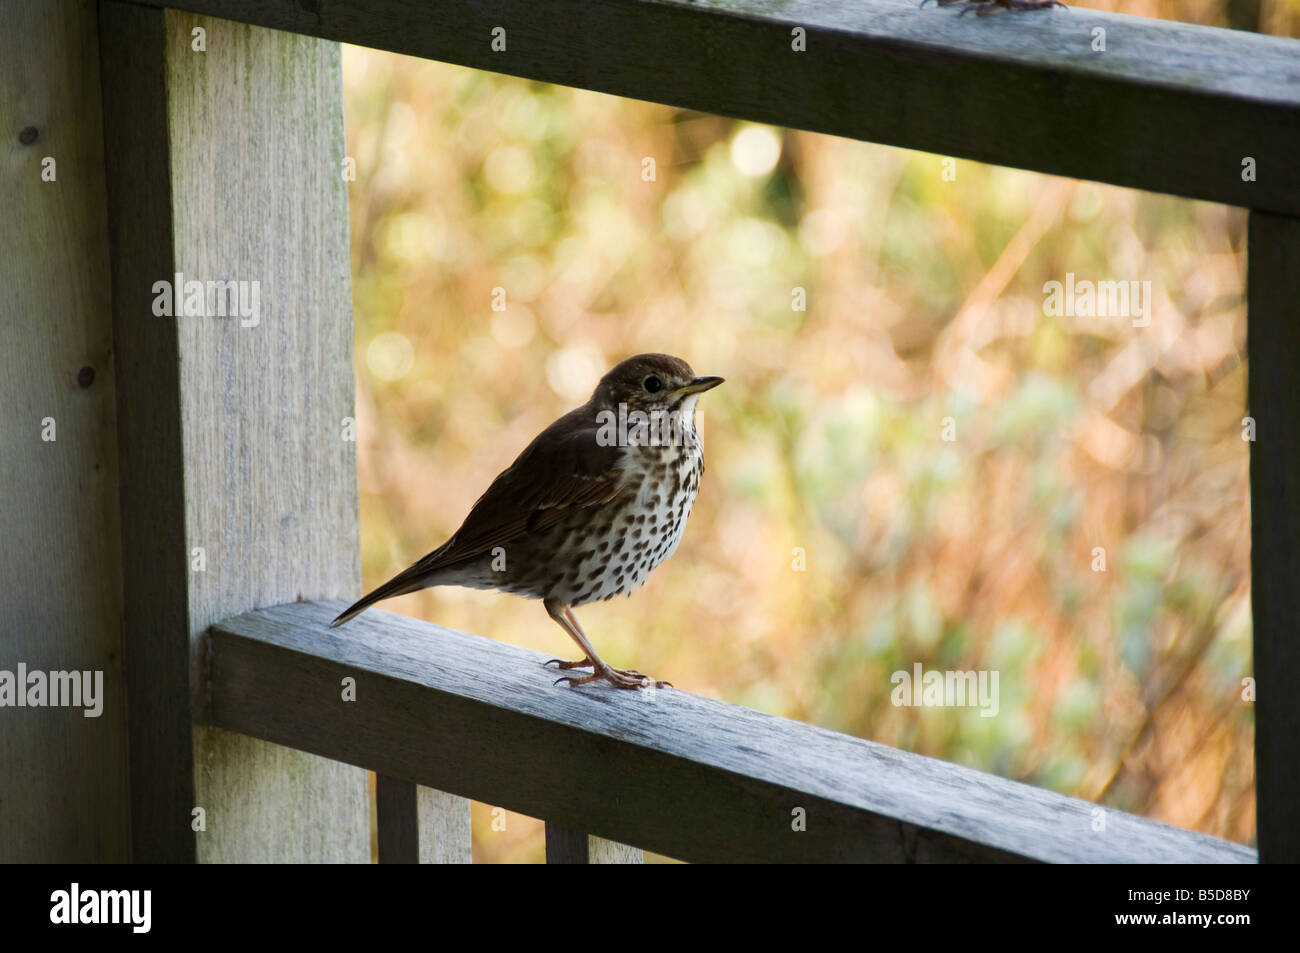 Thrush, Bryer (Bryher), Isles of Scilly, off Cornwall, , Europe - Stock Image